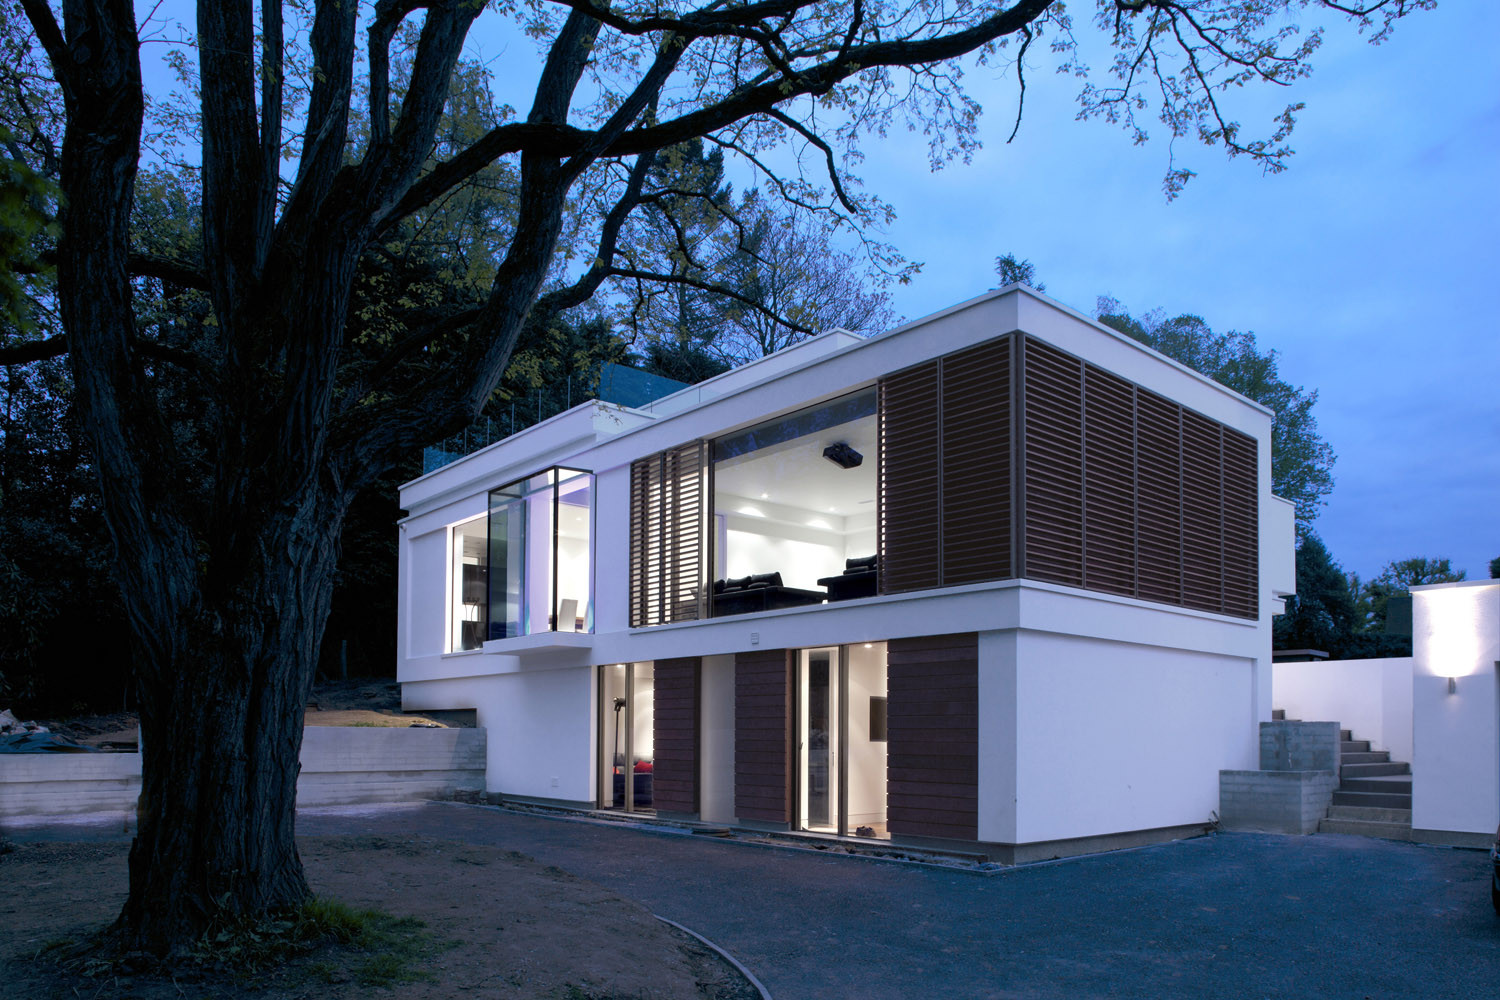 White Lodge by DyerGrimes Architects in Tandridge, England